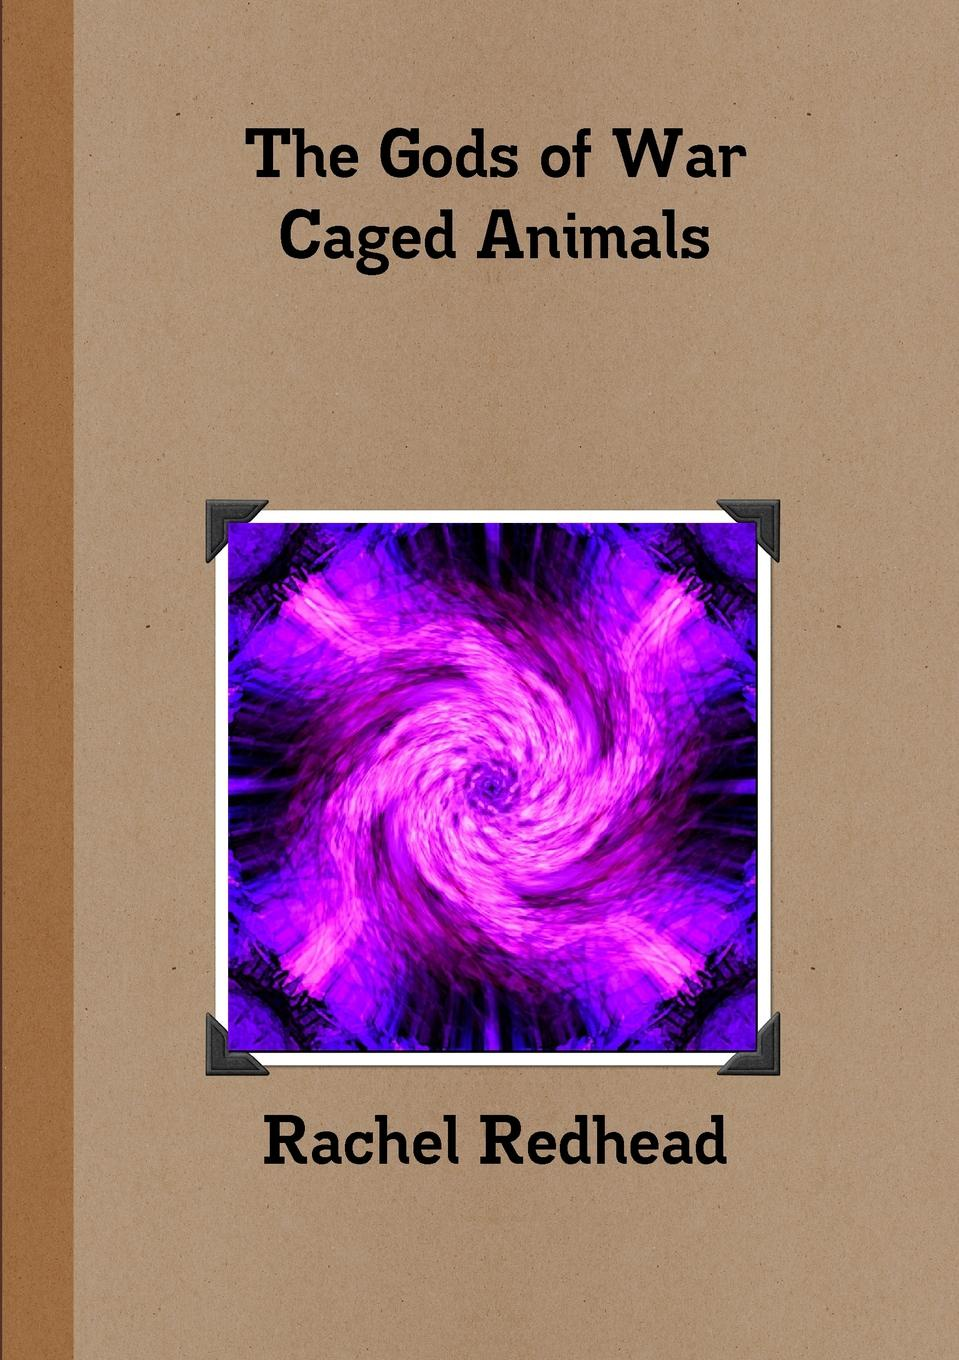 Rachel Redhead The Gods of War - Caged Animals